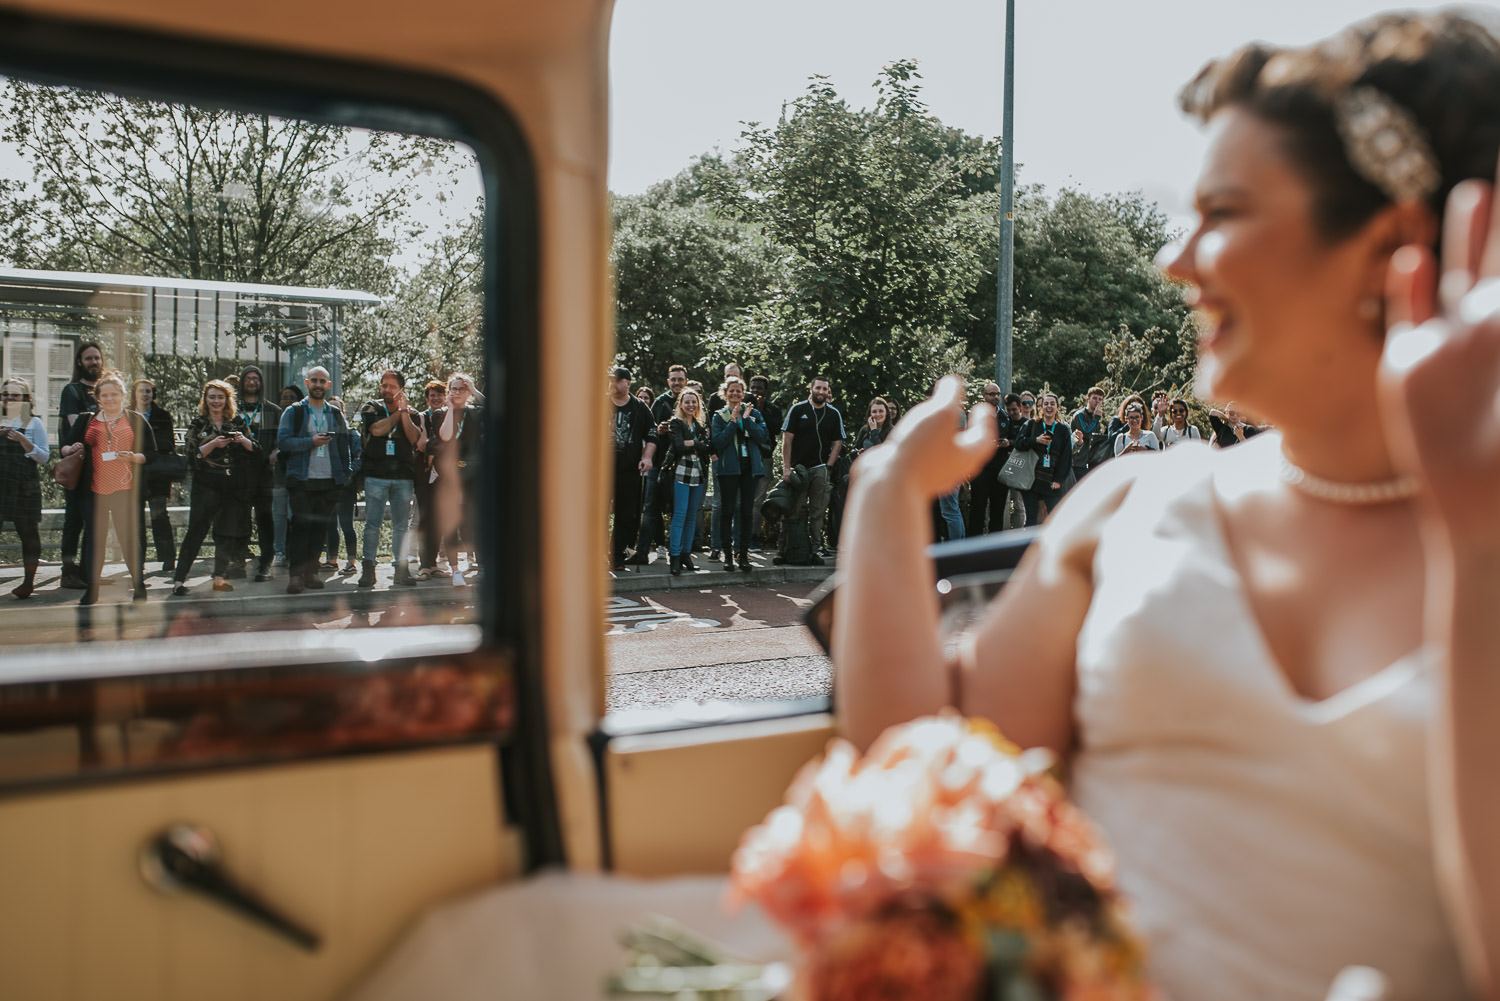 brides waving at people standing at a bus stop